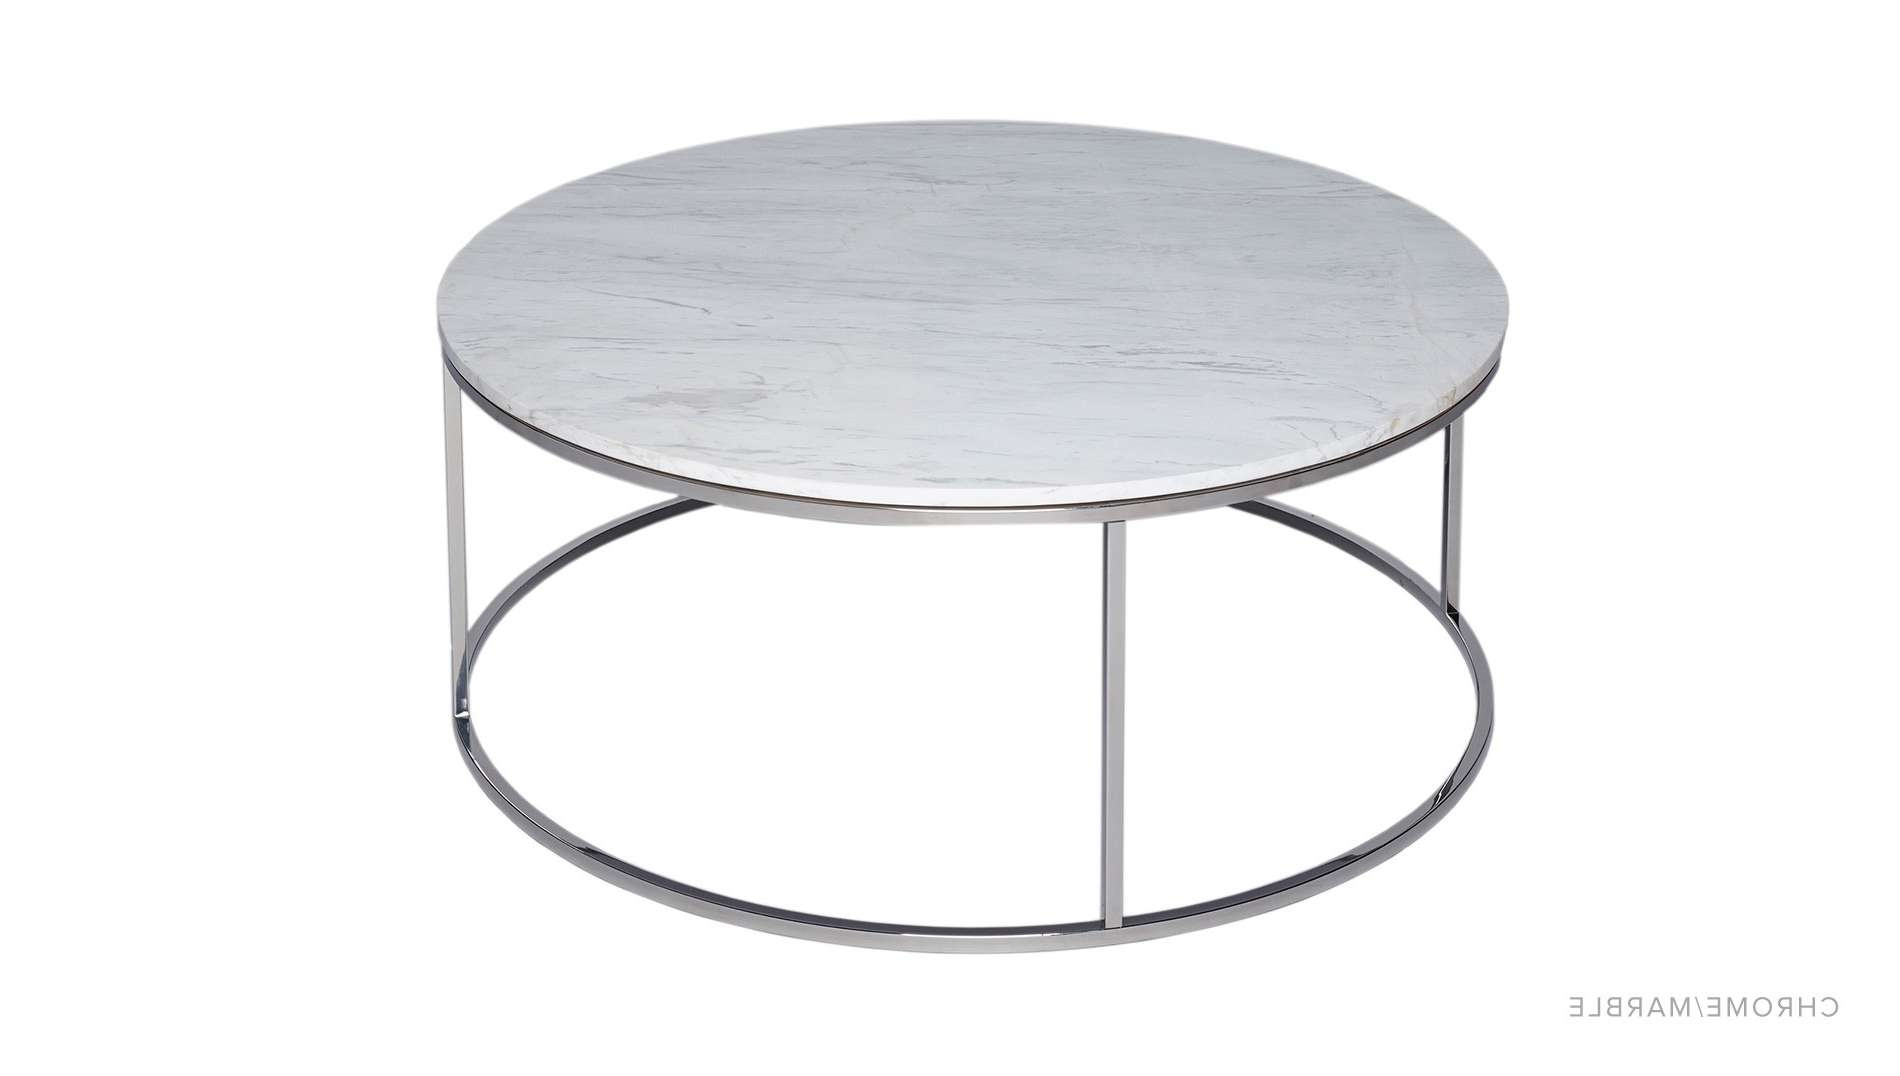 Coffee Tables : Table White Round Coffee Modern Traditional Medium Inside Popular Round Chrome Coffee Tables (Gallery 16 of 20)